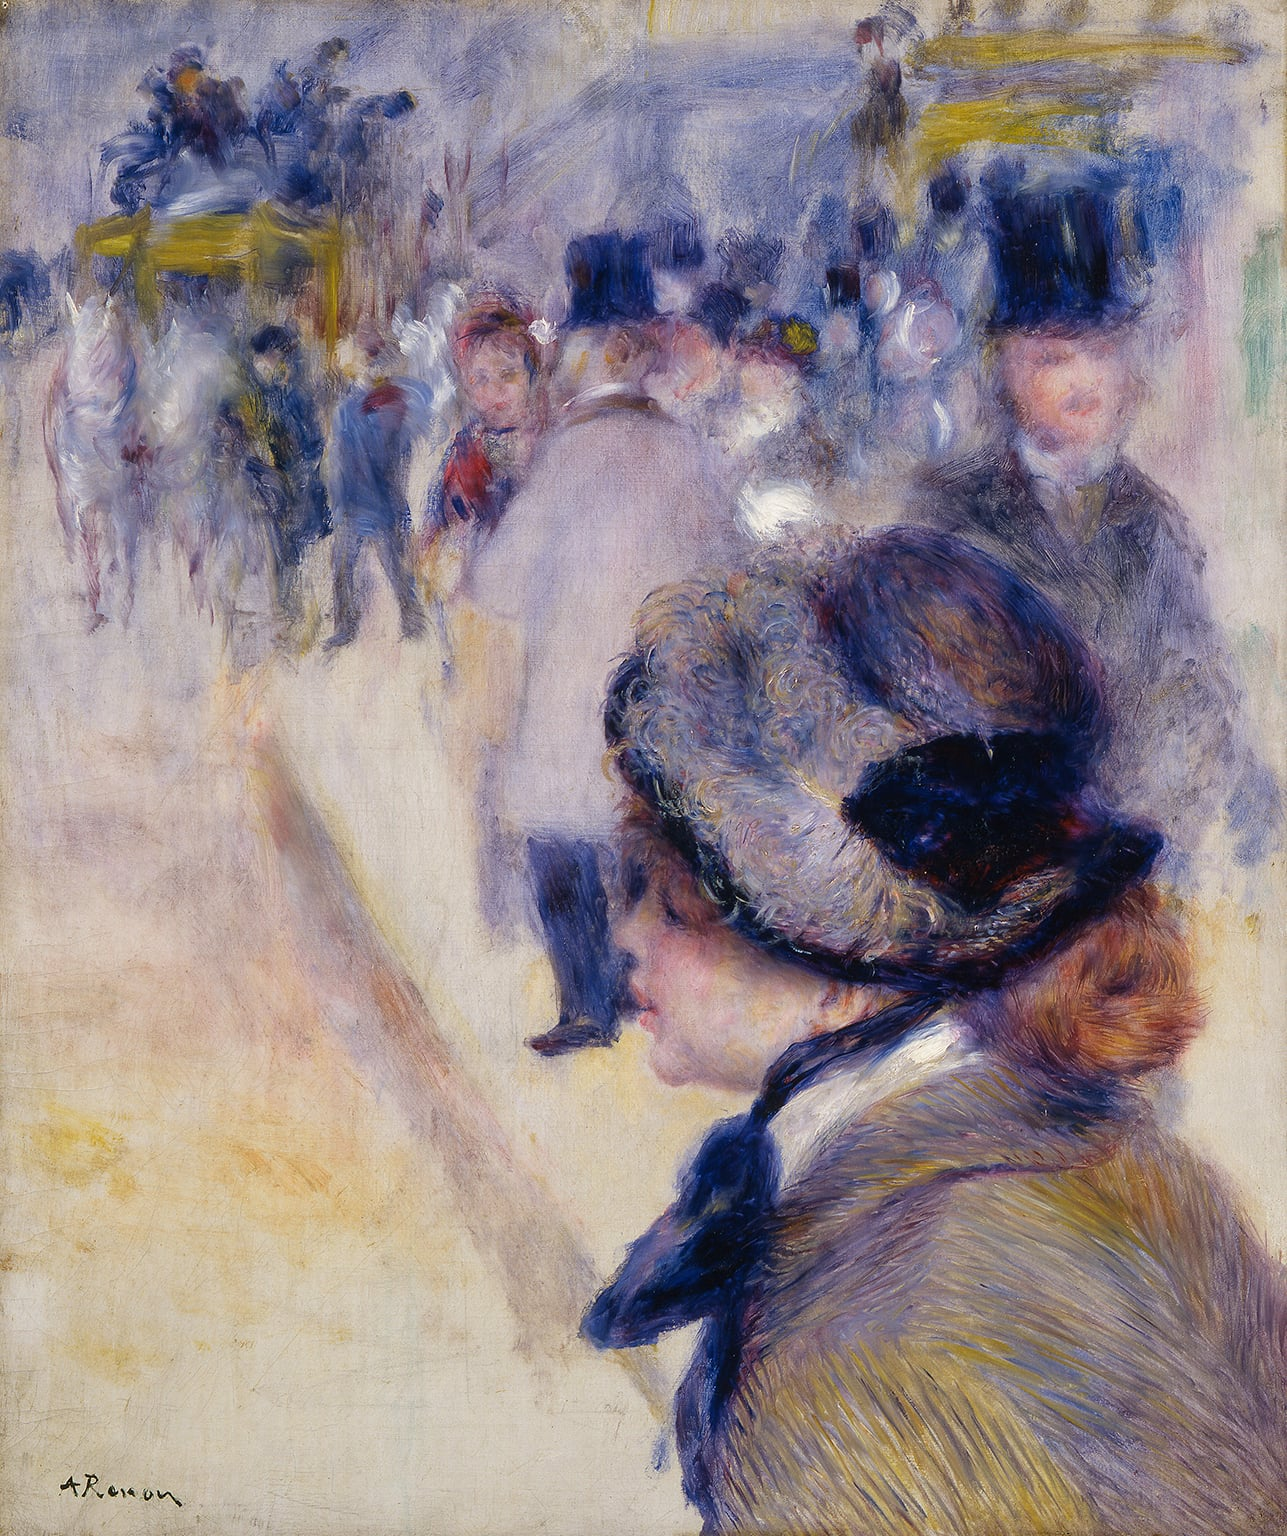 Pierre Auguste Renoir, La Place Clichy, 1880 - Acquired with assistance from the Wolfson Foundation in 1987